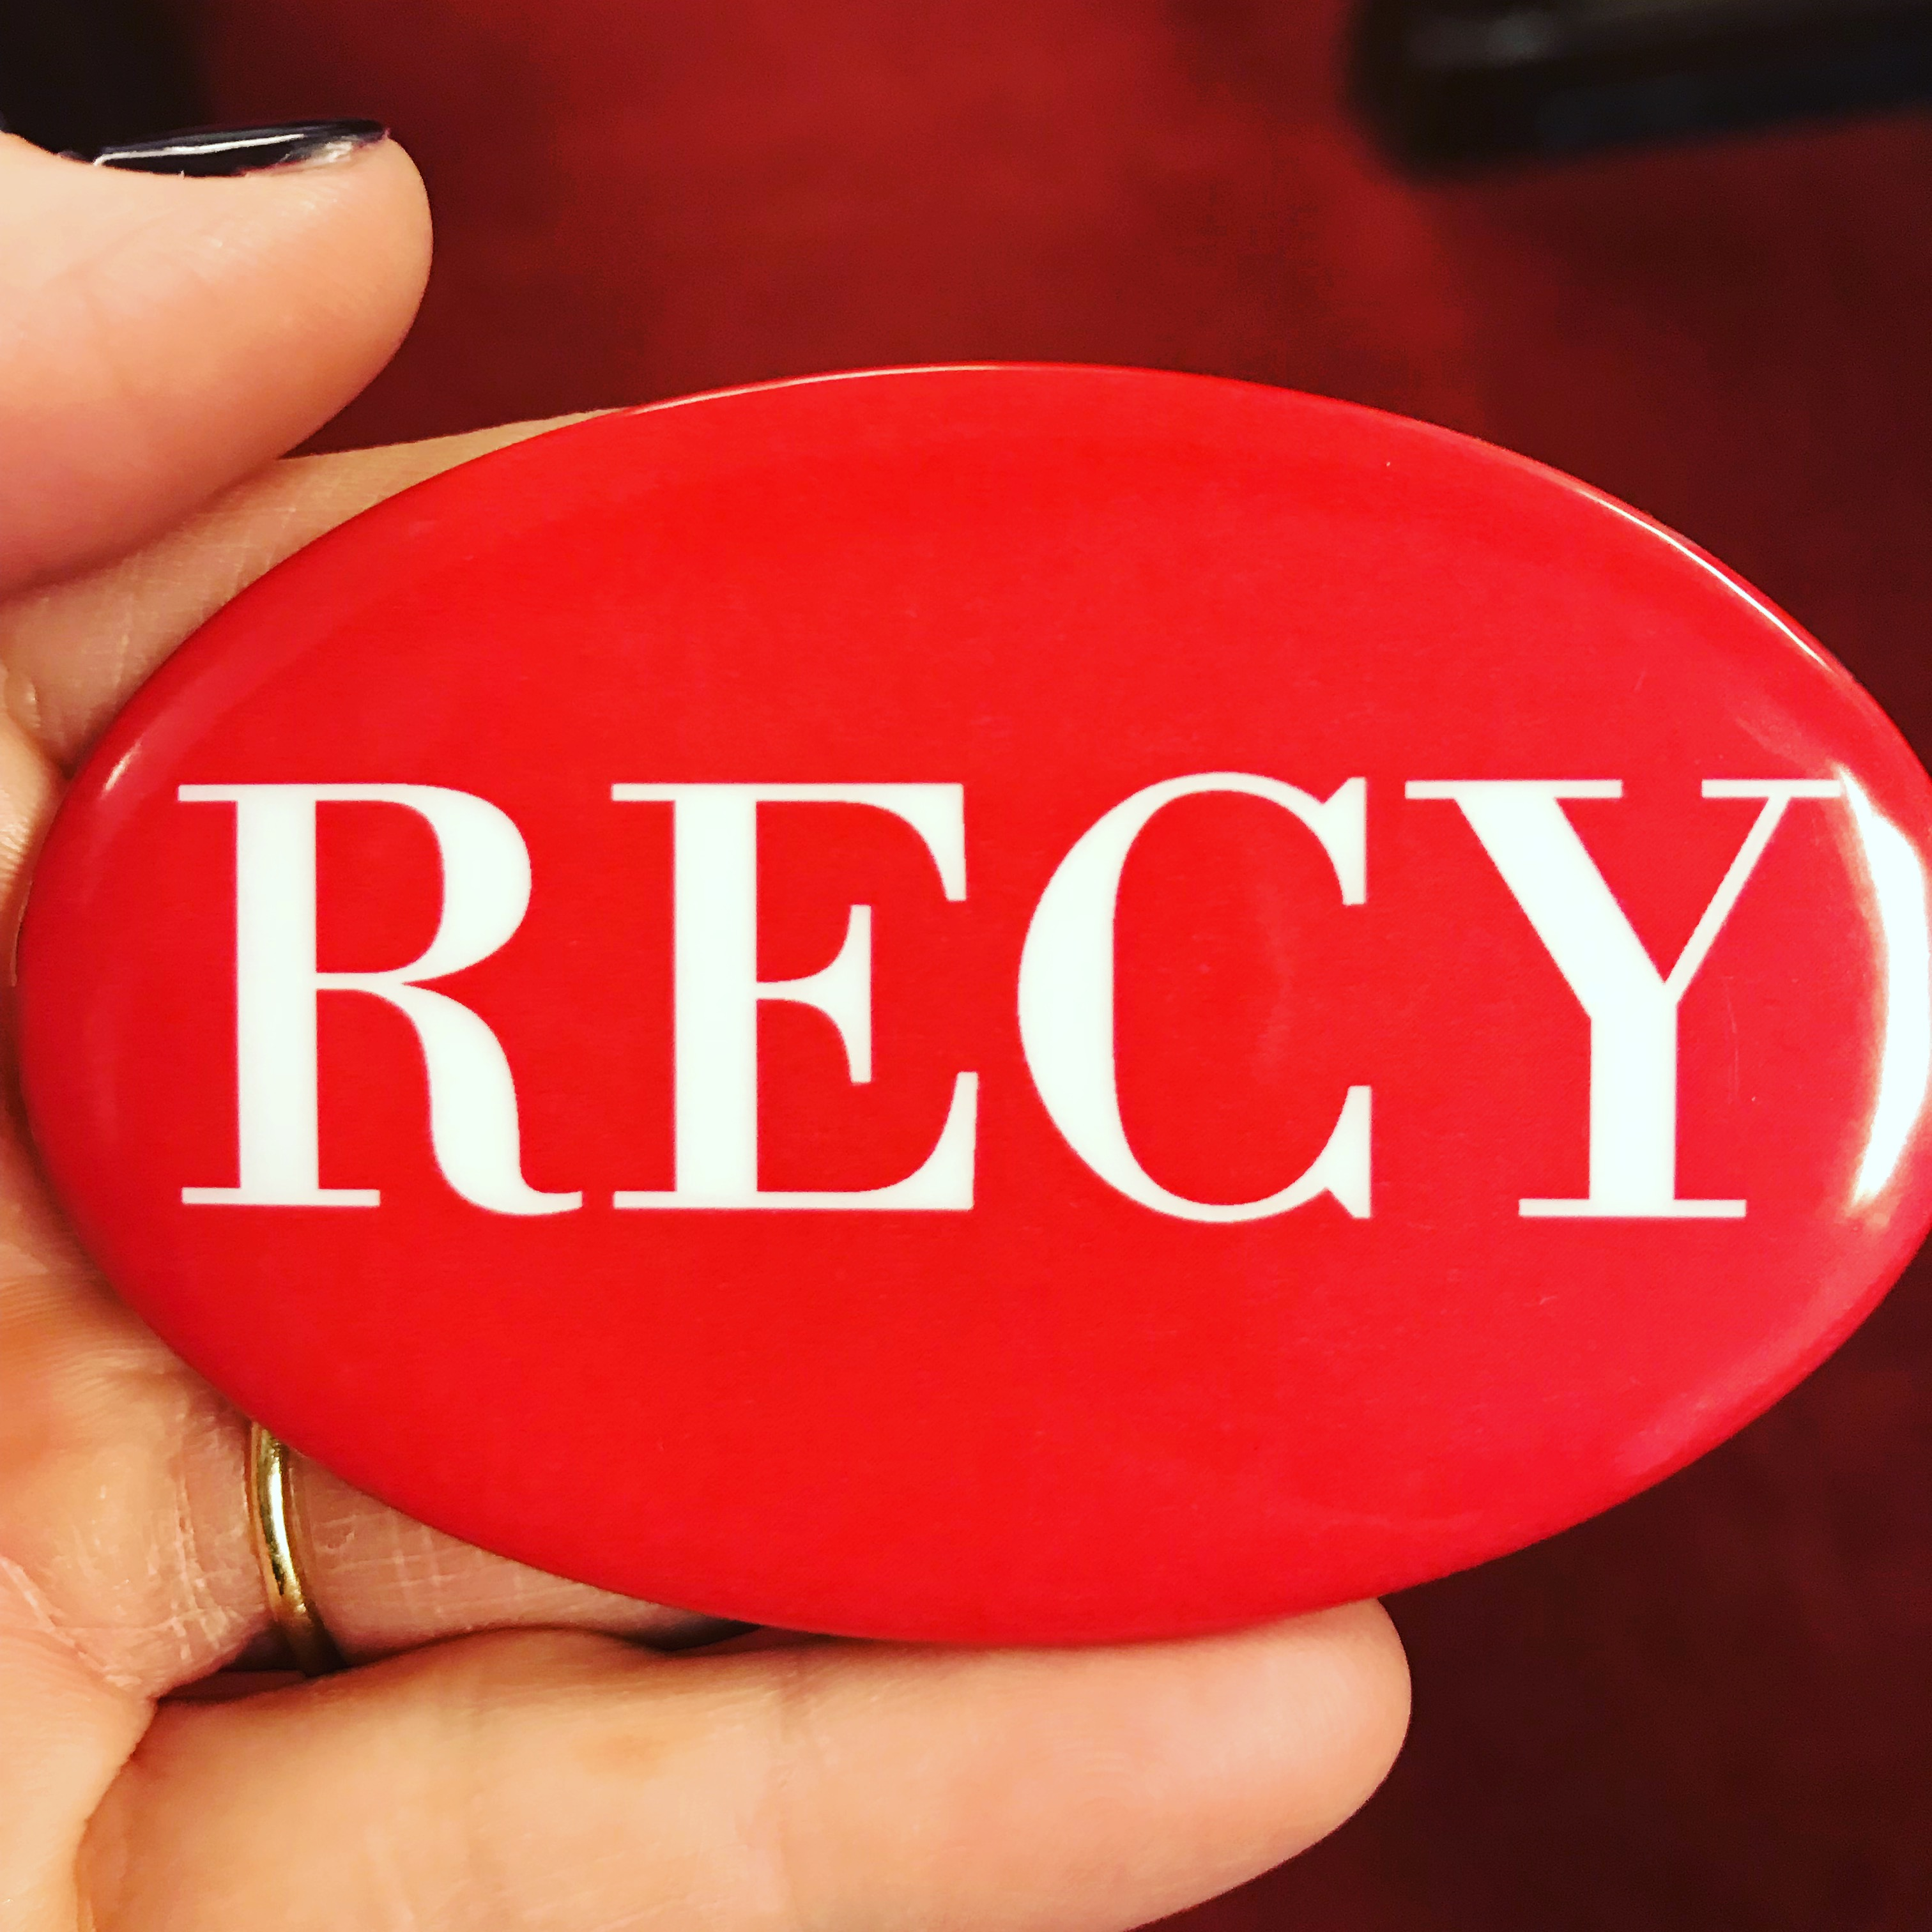 Recy pins worn by the Congressional Black Caucus at the SOTU